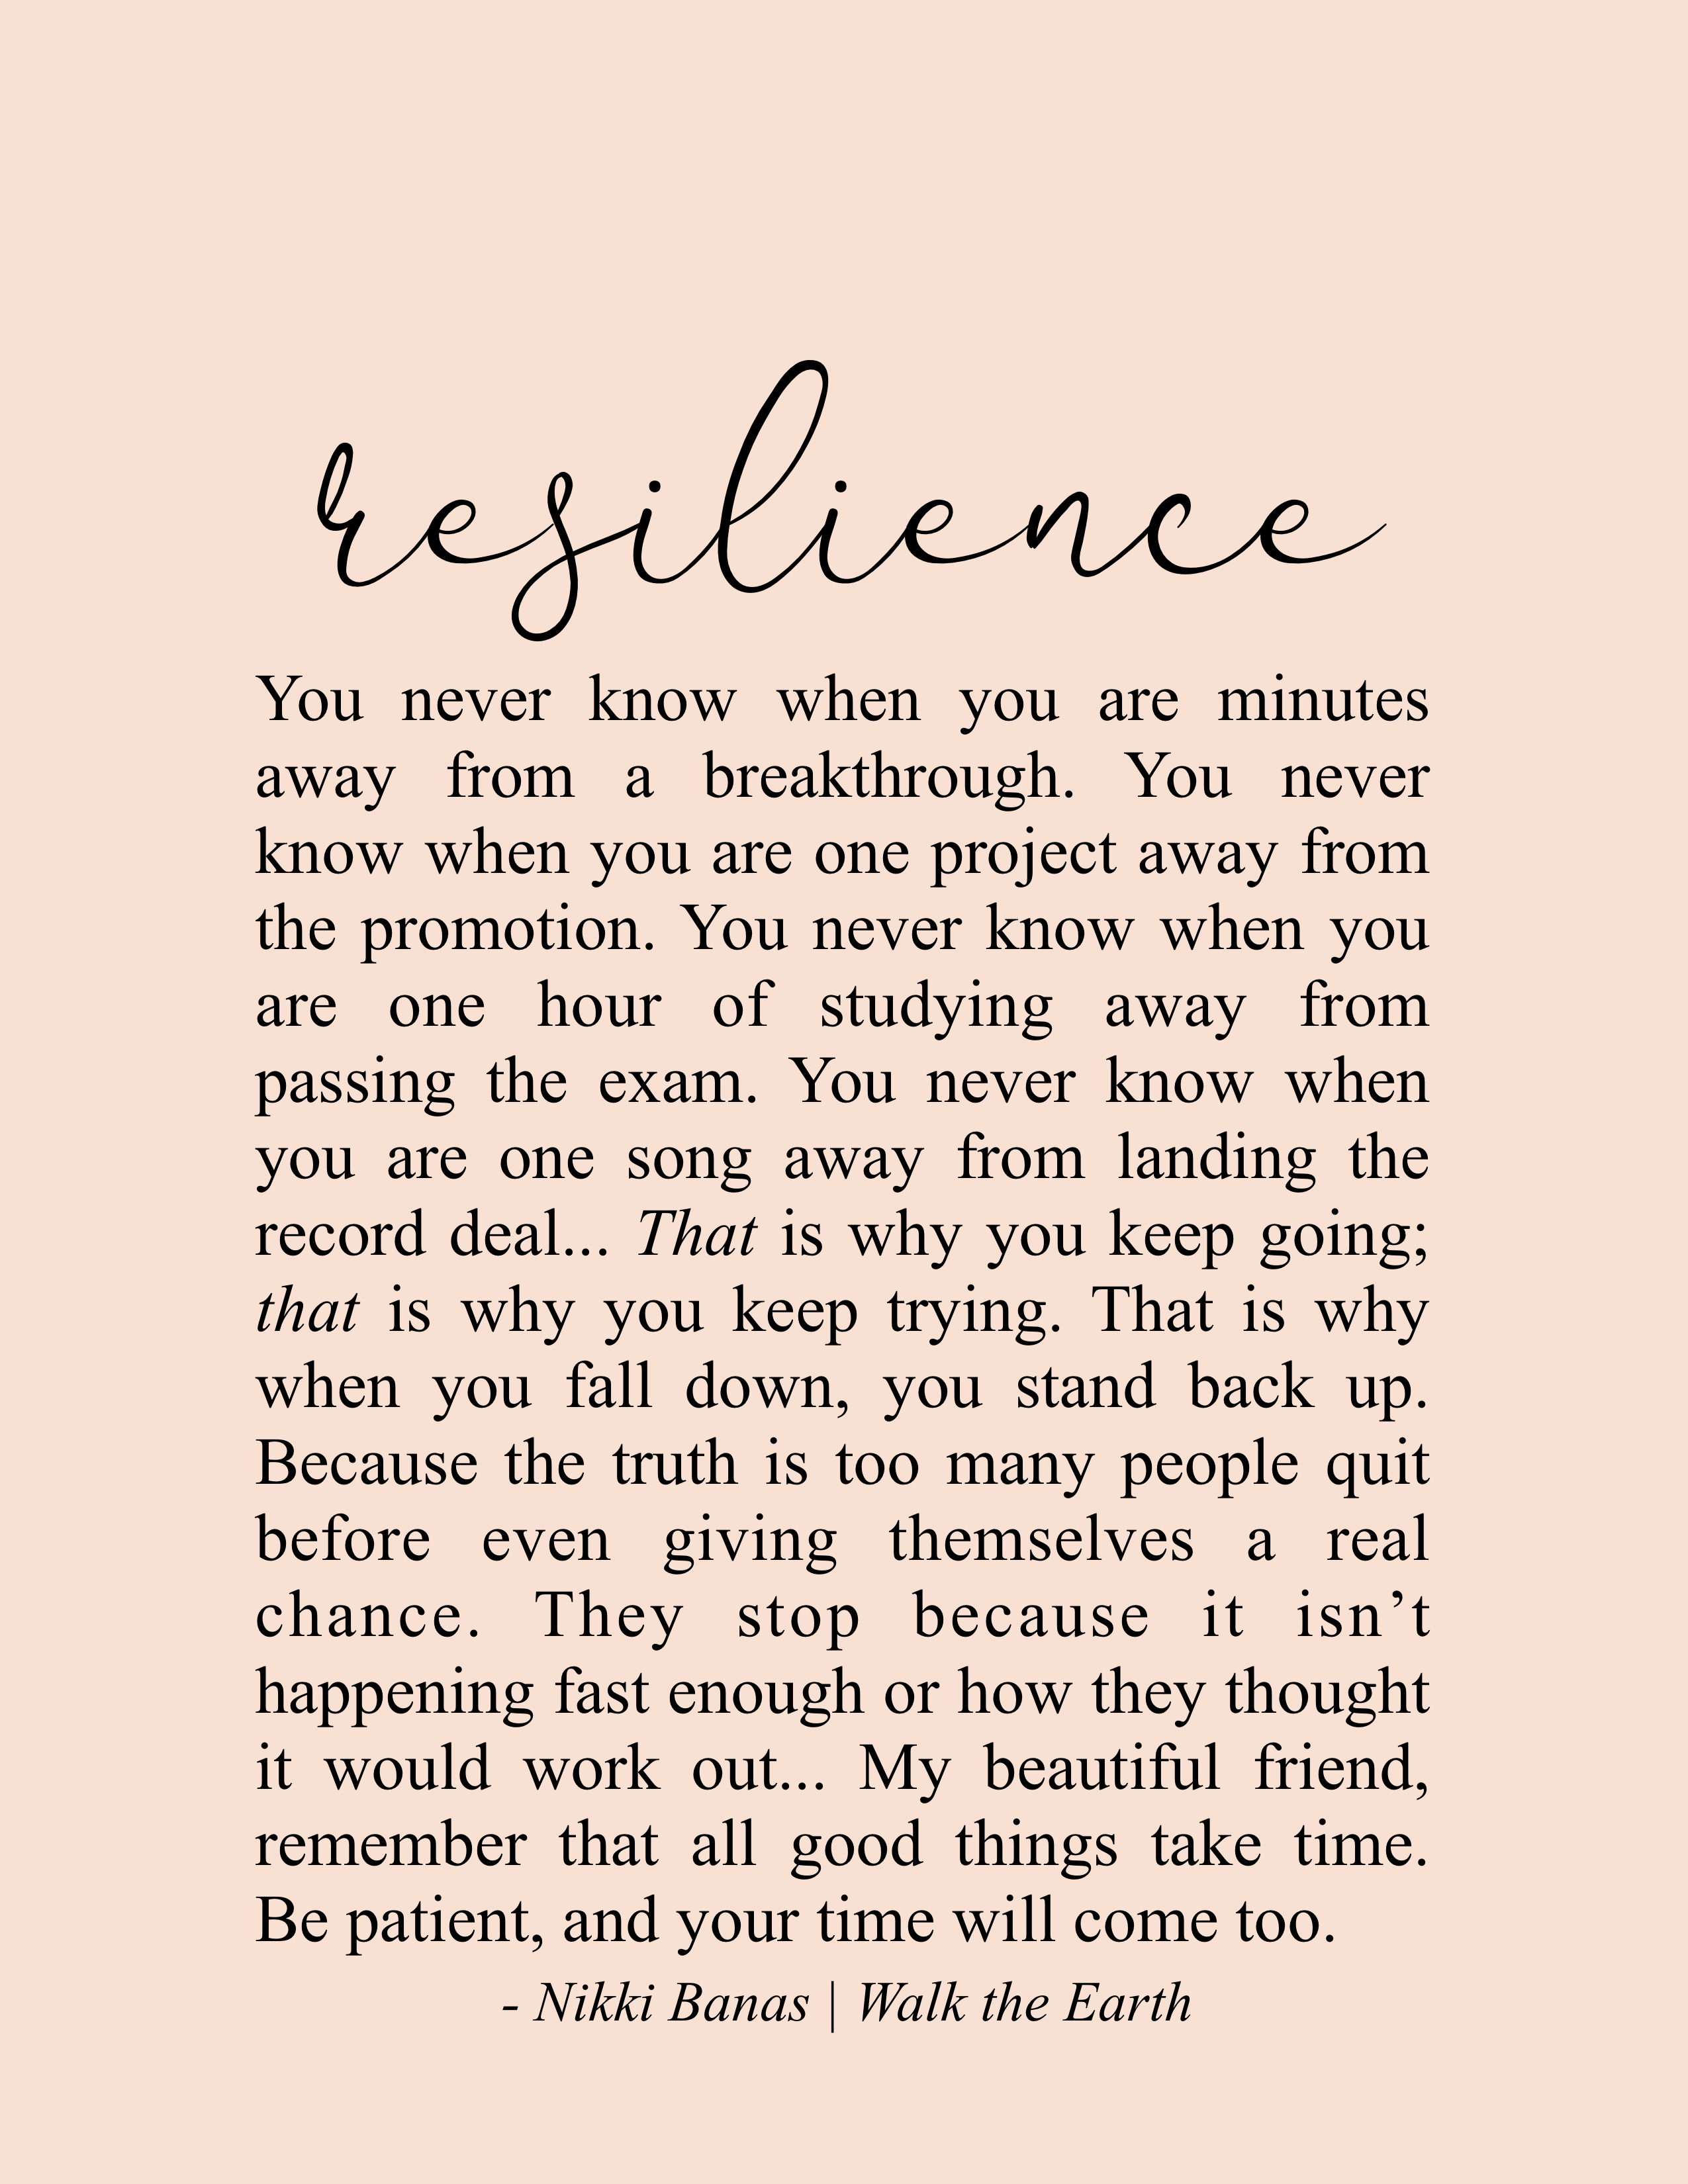 Resilience Quotes, Stand Up, Keep Trying, Keep Going, Nikki Banas, Walk the Earth Poetry